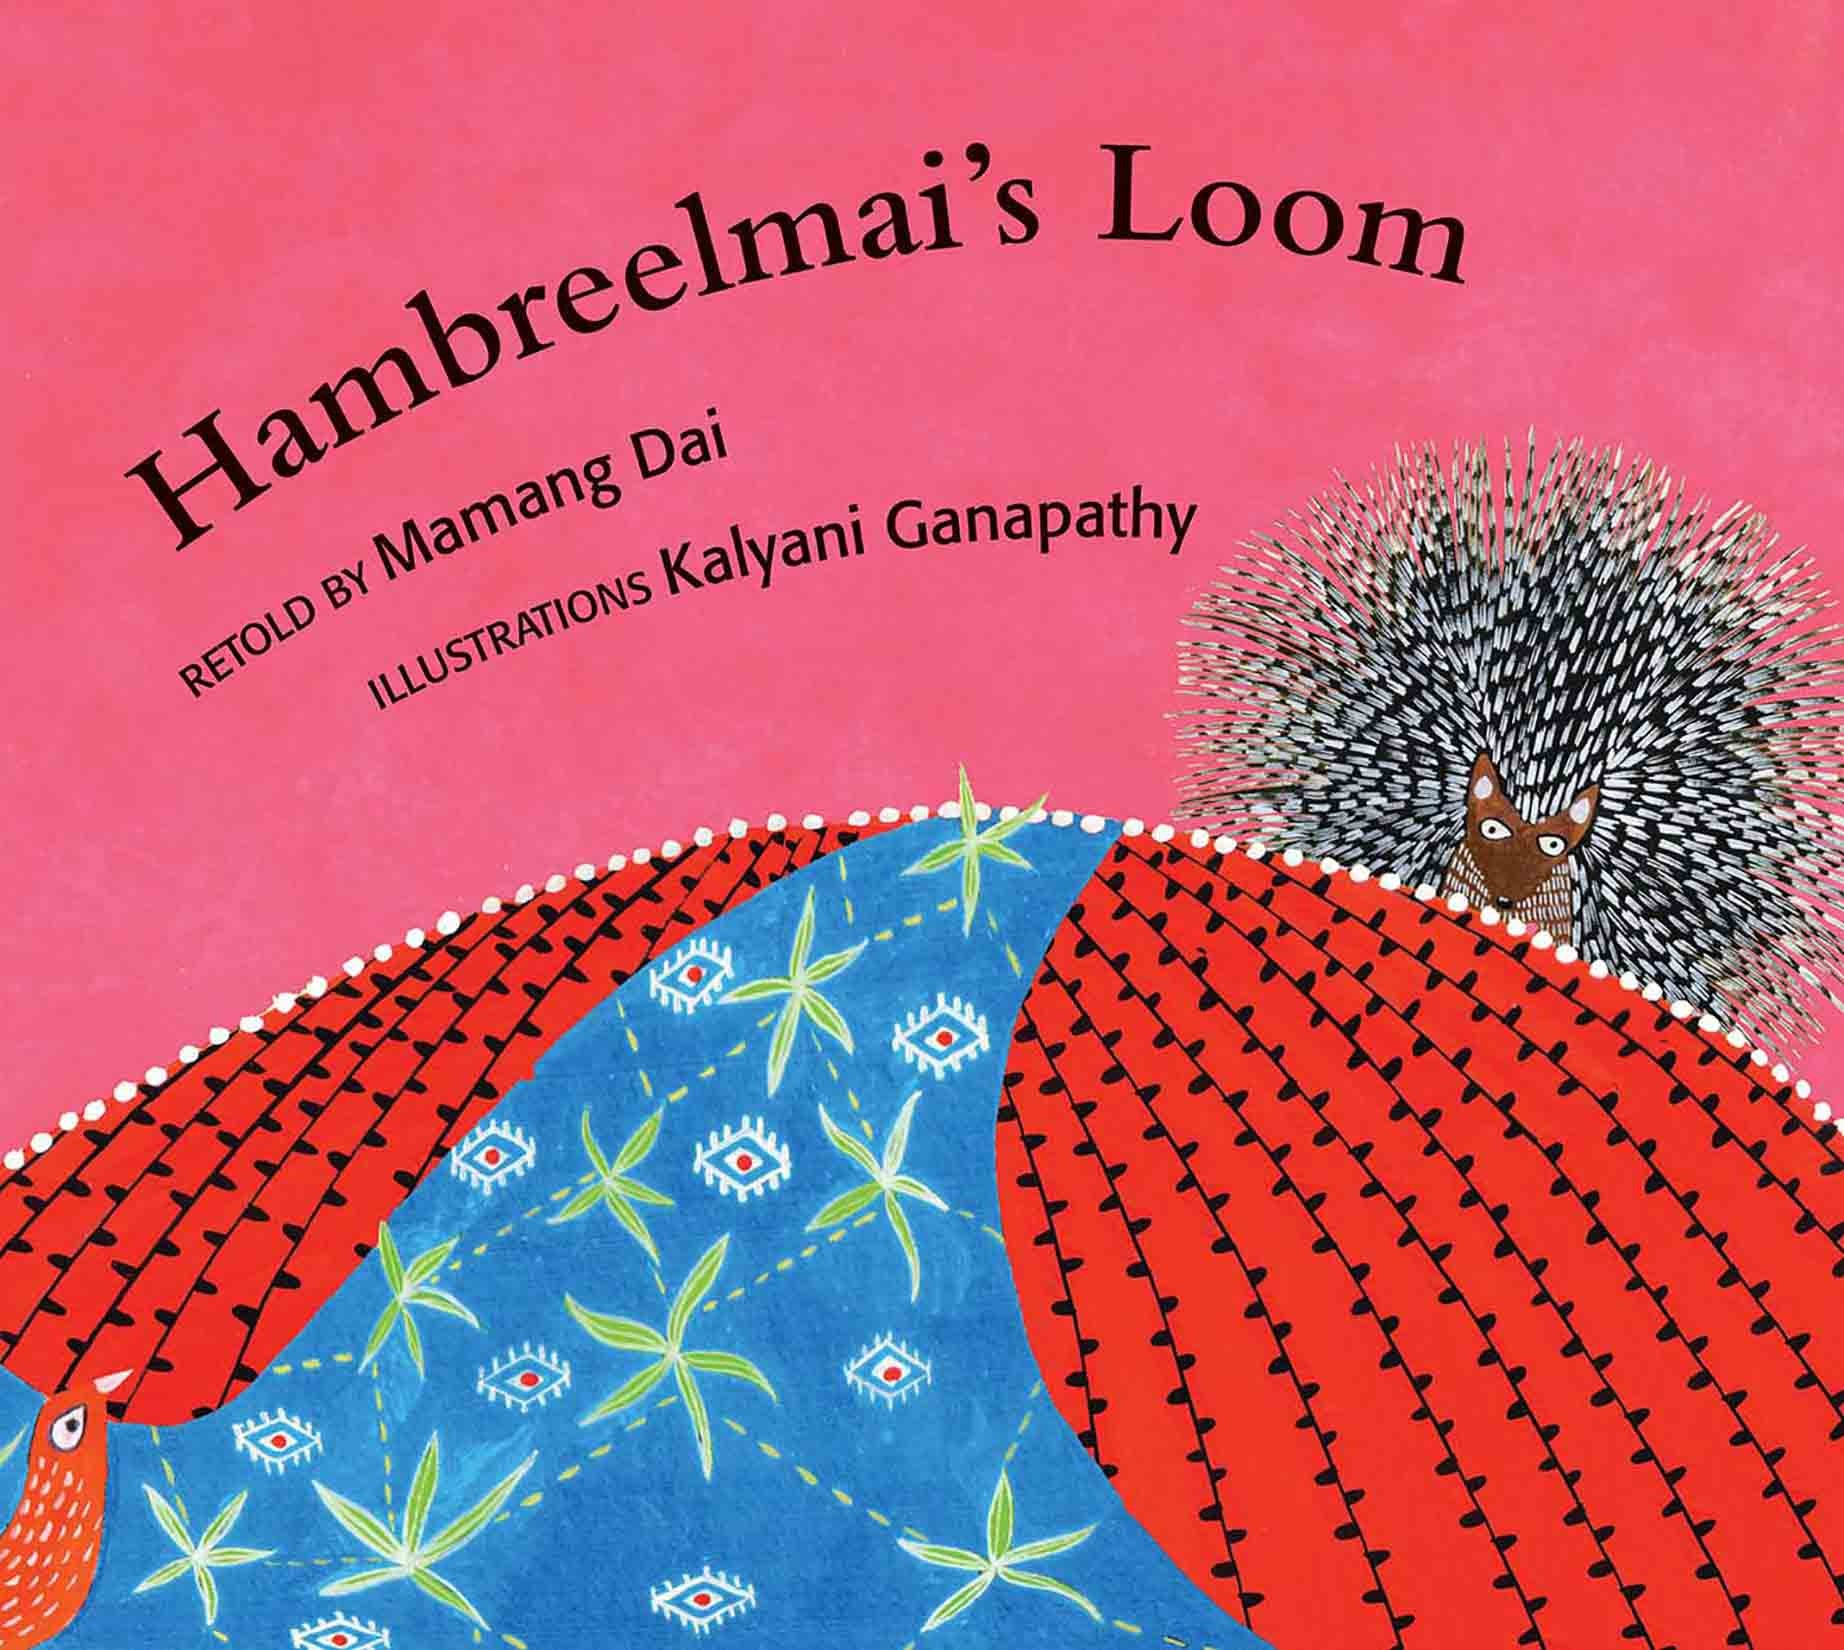 Hambreelmai's Loom (English)